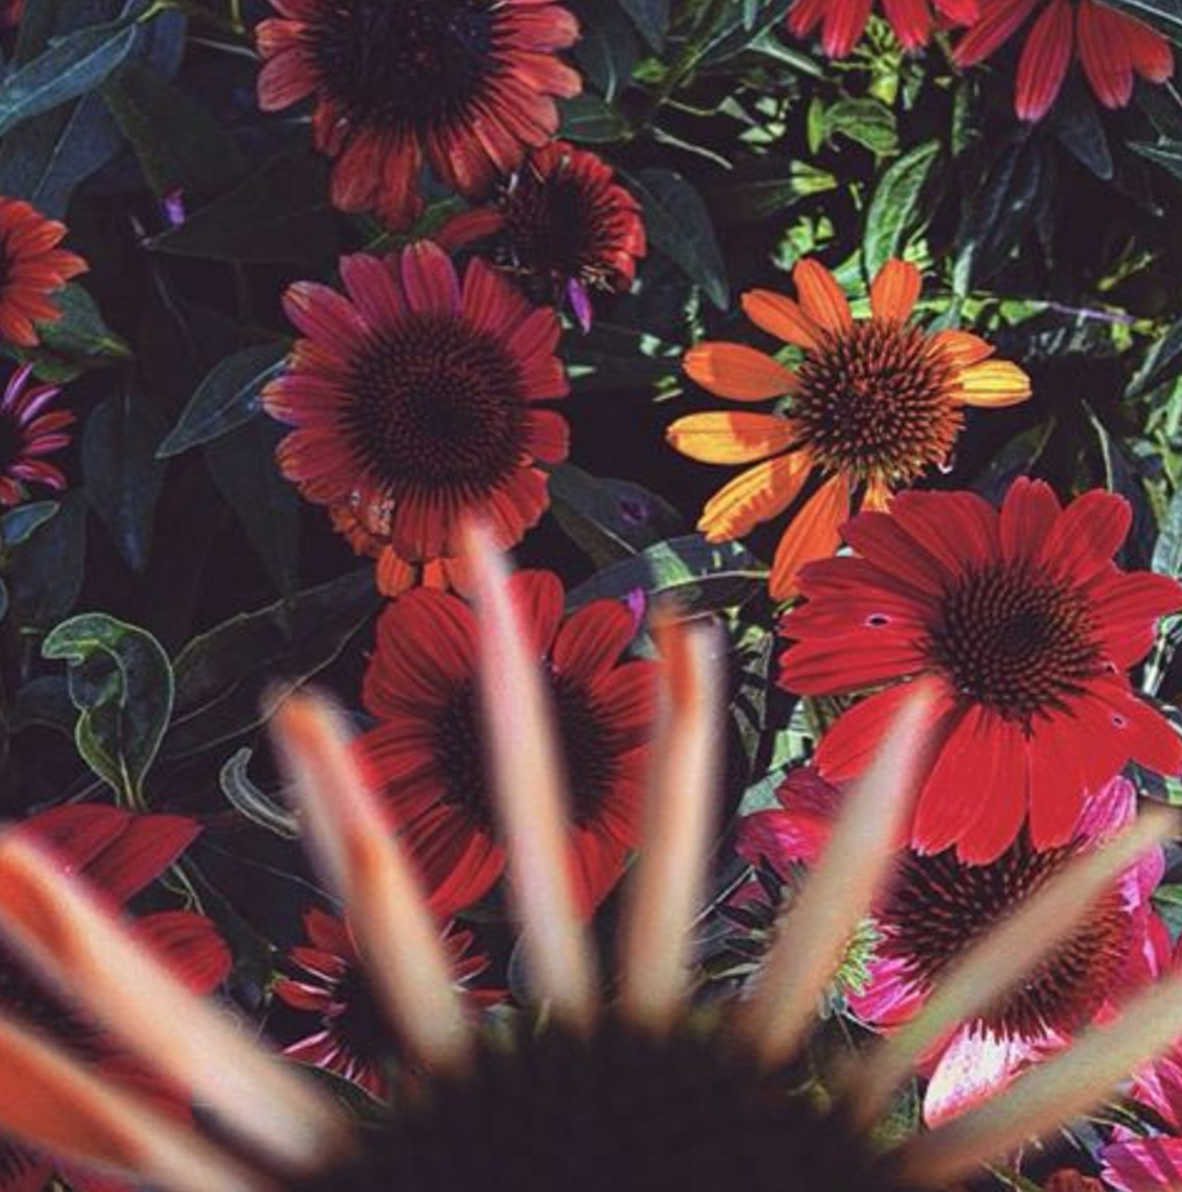 Aliana Grace Bailey Flowers nature photography.png